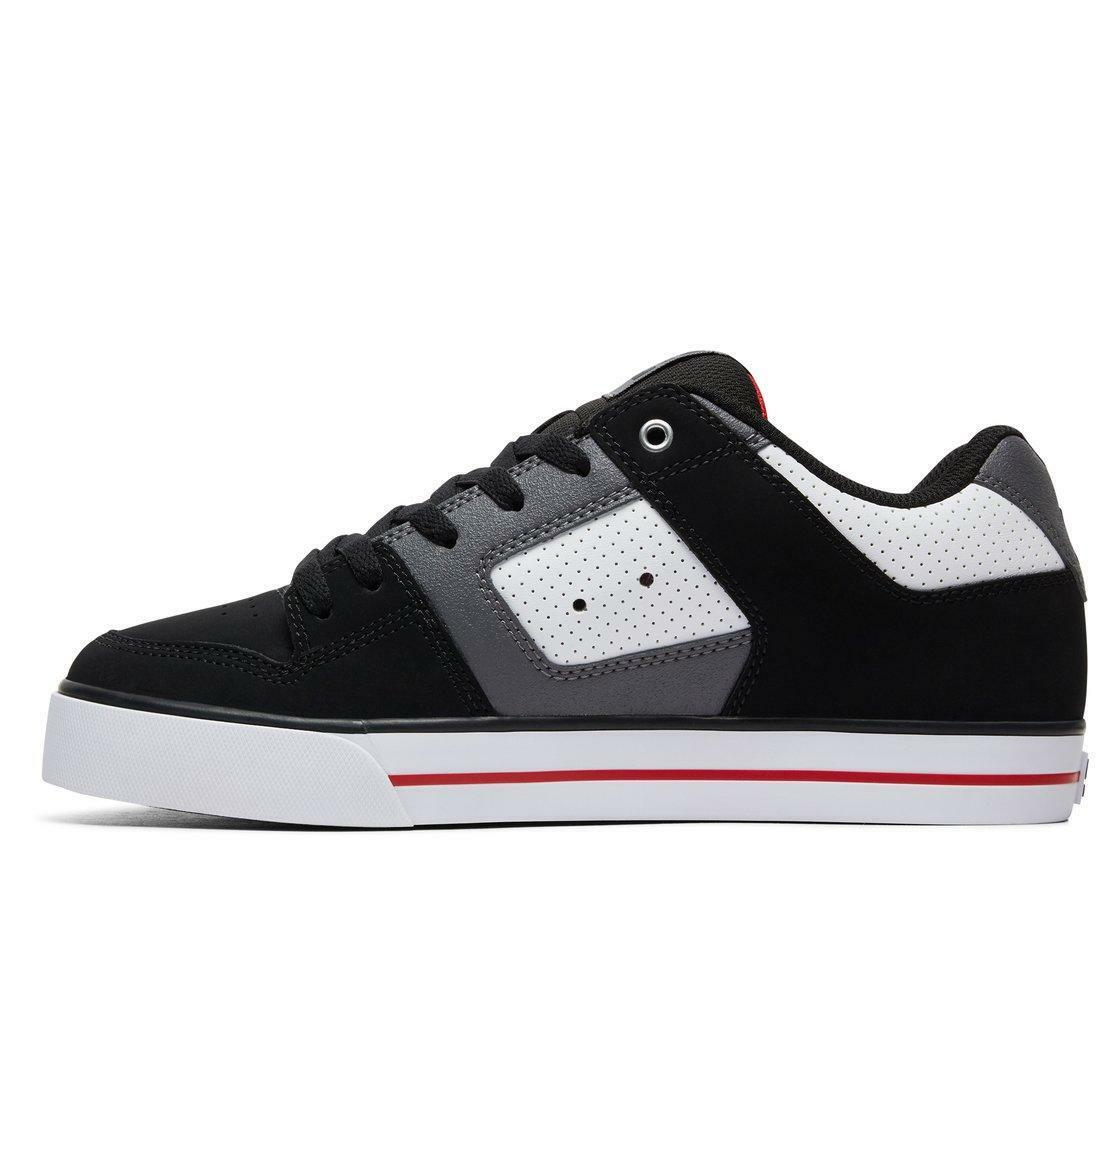 DC SHOES MENS TRAINERS.PURE BLACK/RED/WHITE LEATHER PADDED XWK SKATE SHOES 8S 60 XWK PADDED ca94d1